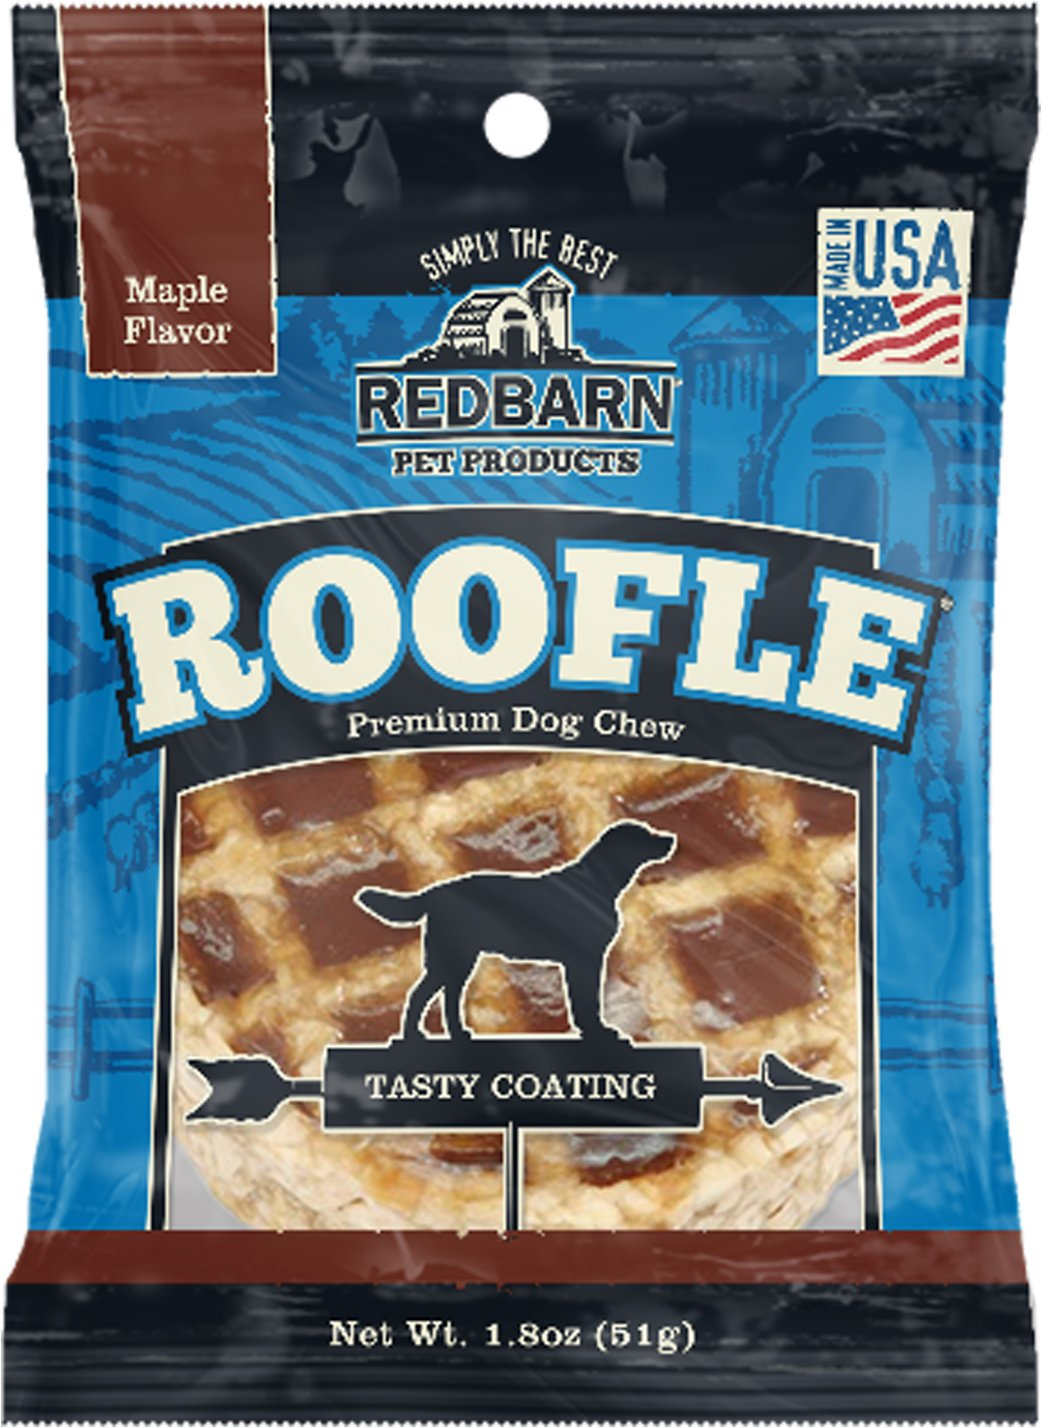 com barns barn treats customer in melissa red products food of ears usa redbarn verified dog cow natural made pawstruck j review